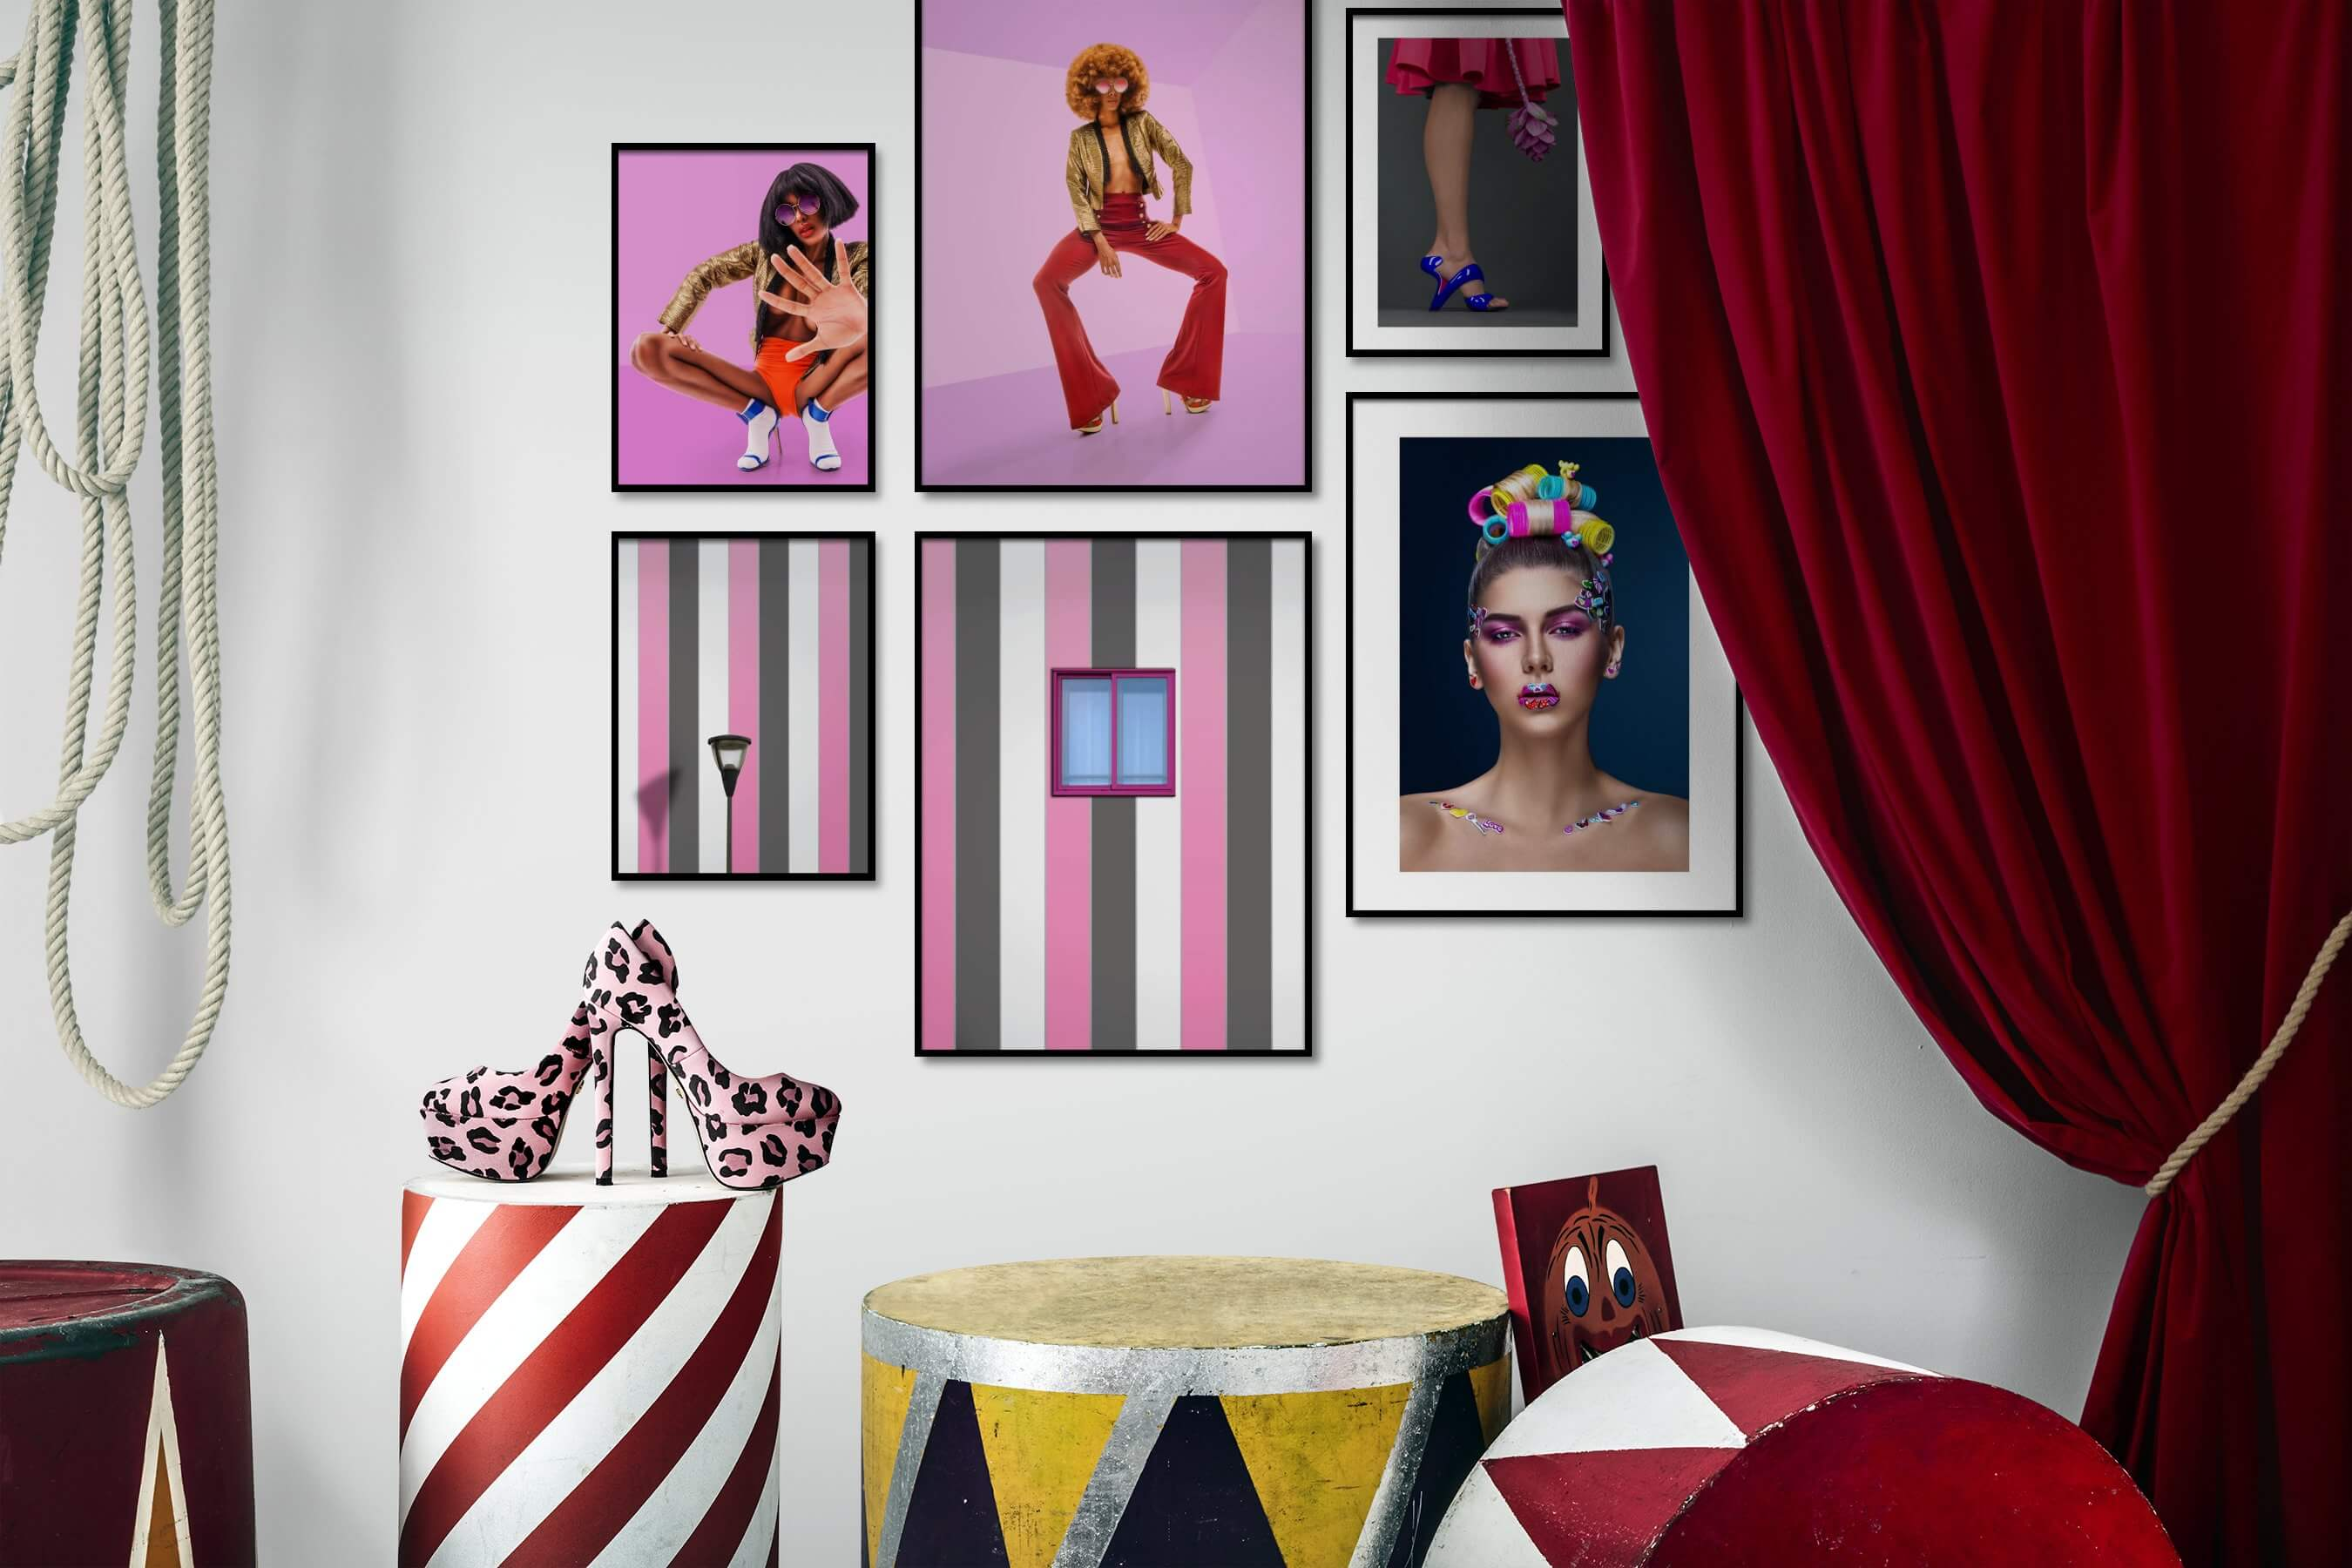 Gallery wall idea with six framed pictures arranged on a wall depicting Fashion & Beauty, Colorful, Vintage, and For the Moderate